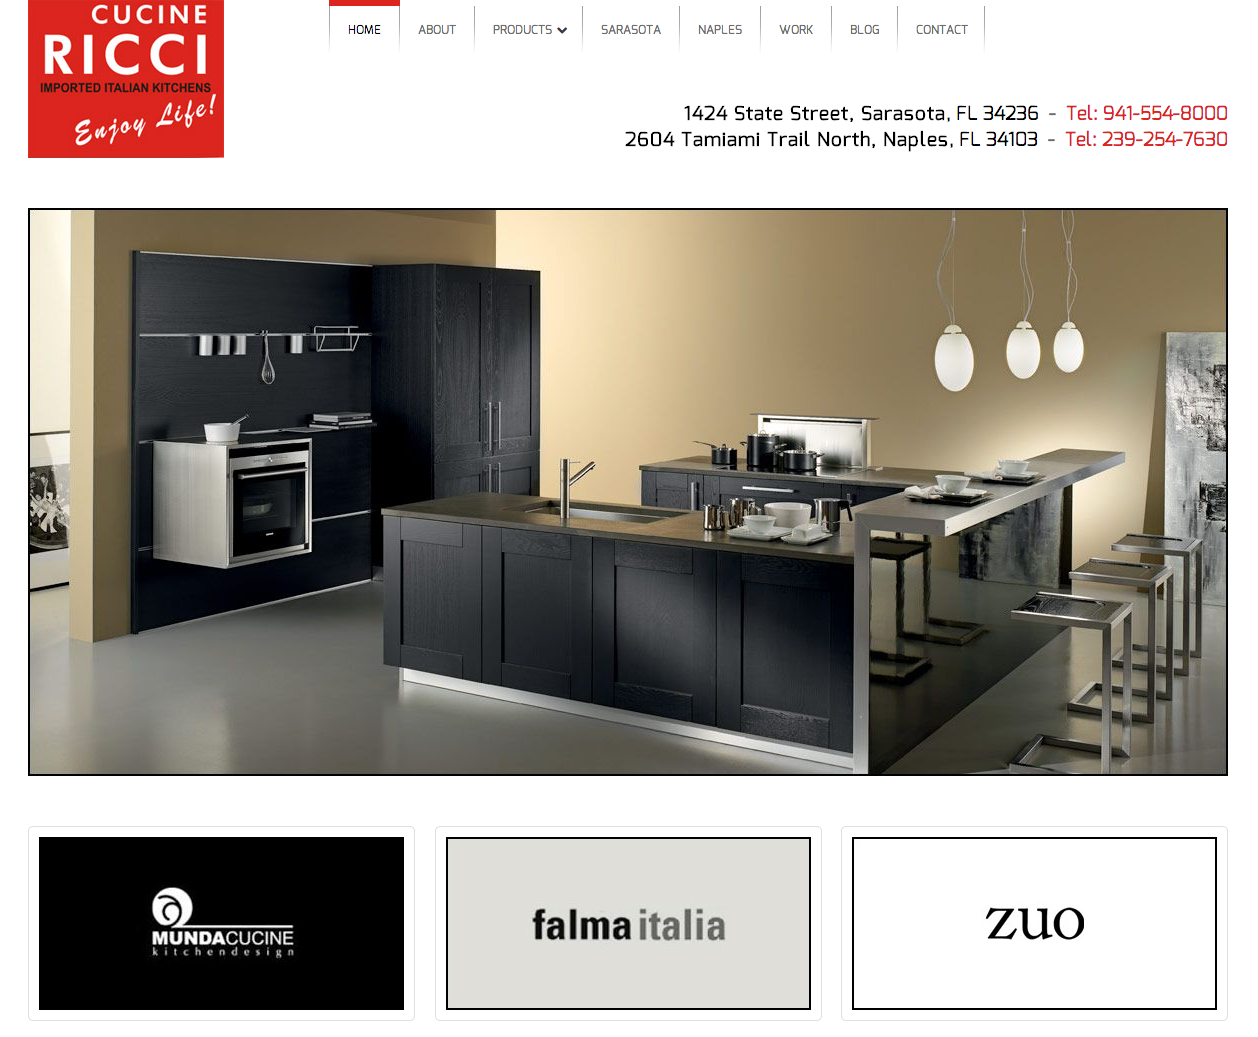 Cucine Ricci Has Custommade Italian Kitchens And A New Website Magnificent Kitchen Design Website Design Decoration